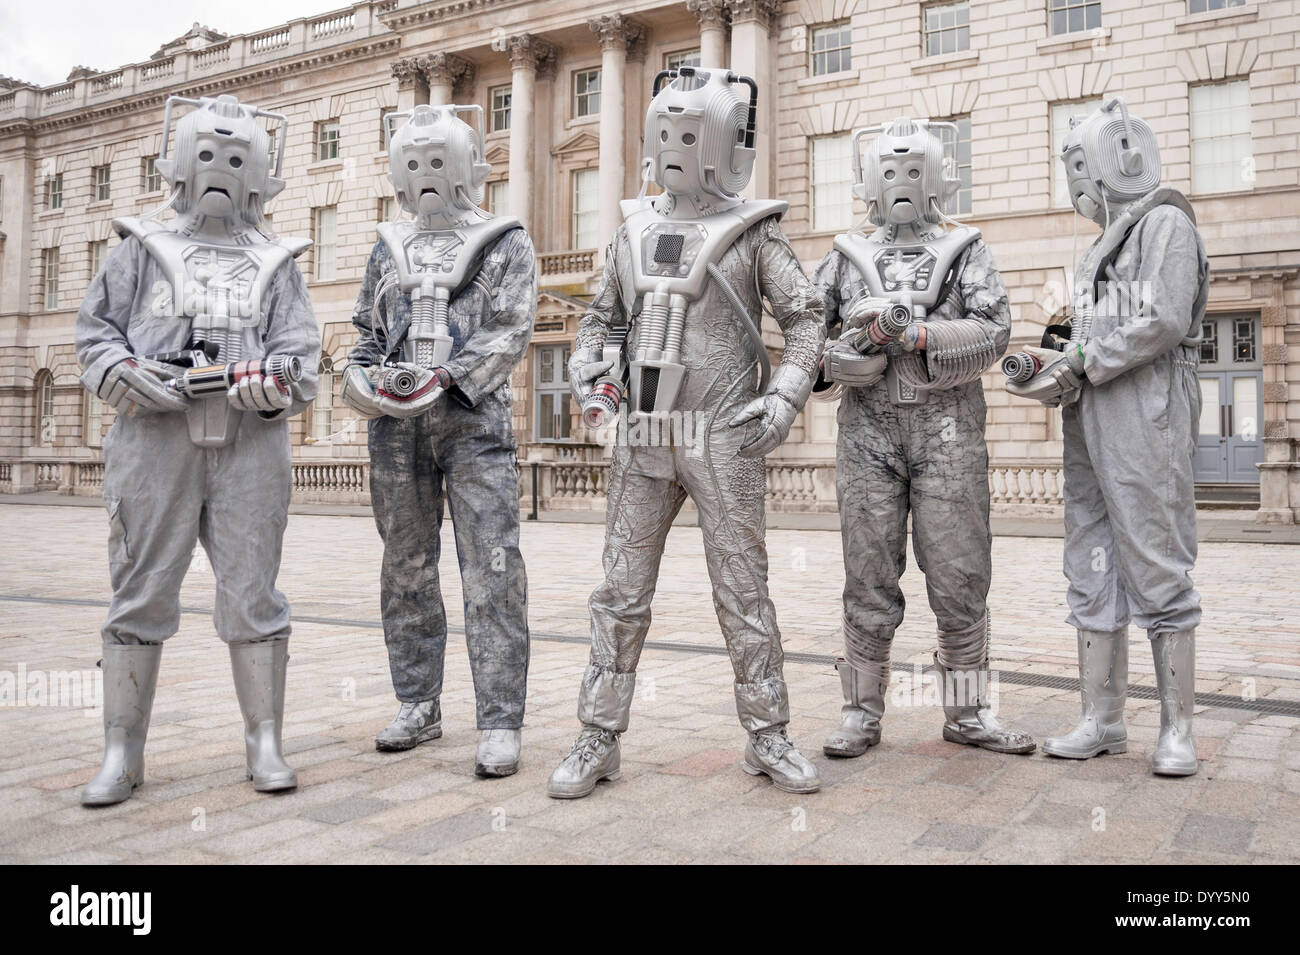 London, 27 April 2014 - people dressed as their favourite sci-fi characters take part in the Sci-Fi London 2014 Stock Photo